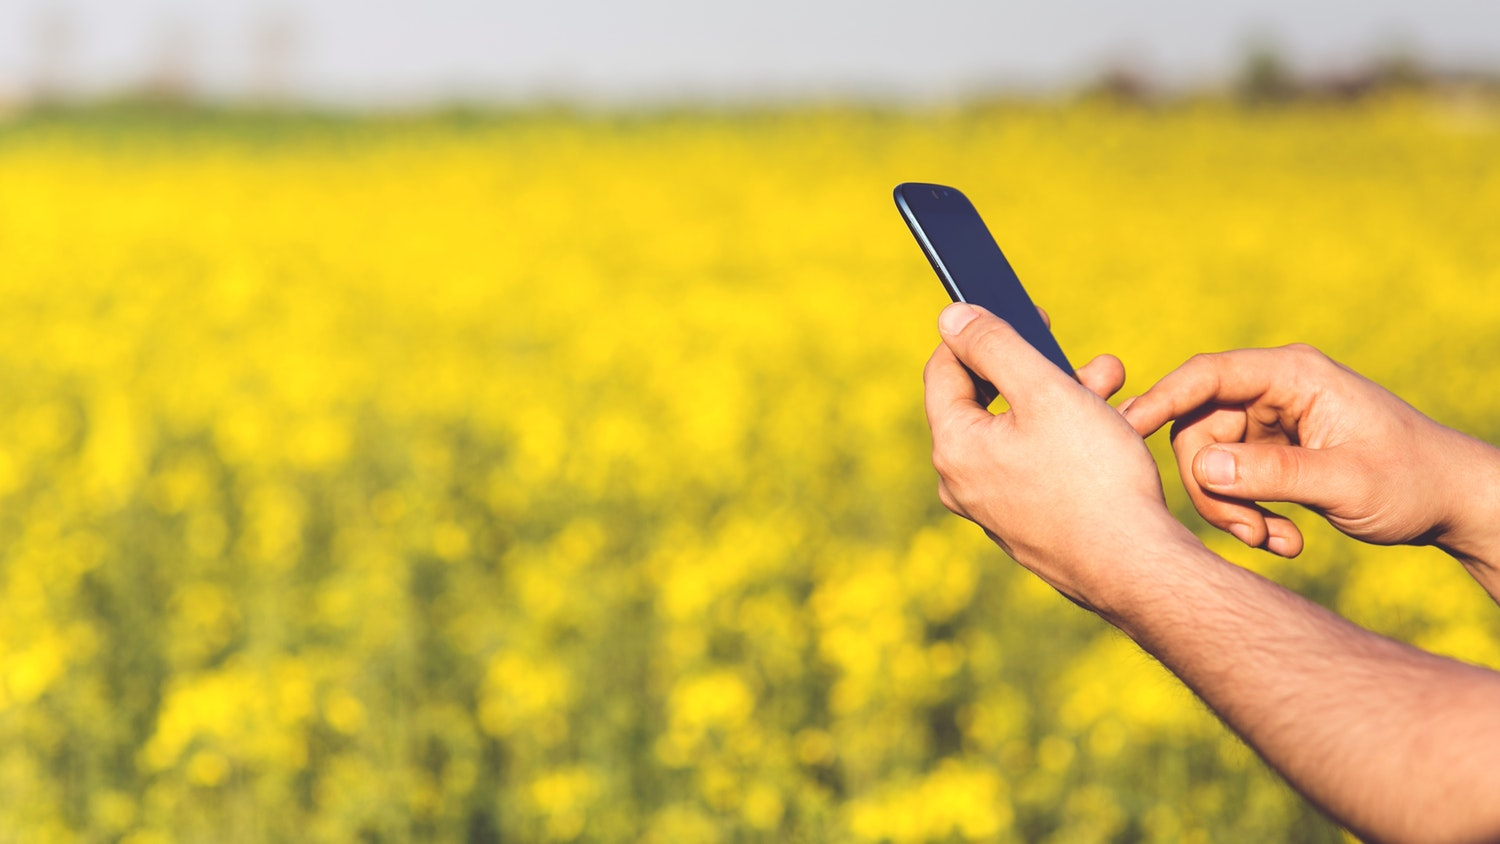 Hands holding a cellphone in a field